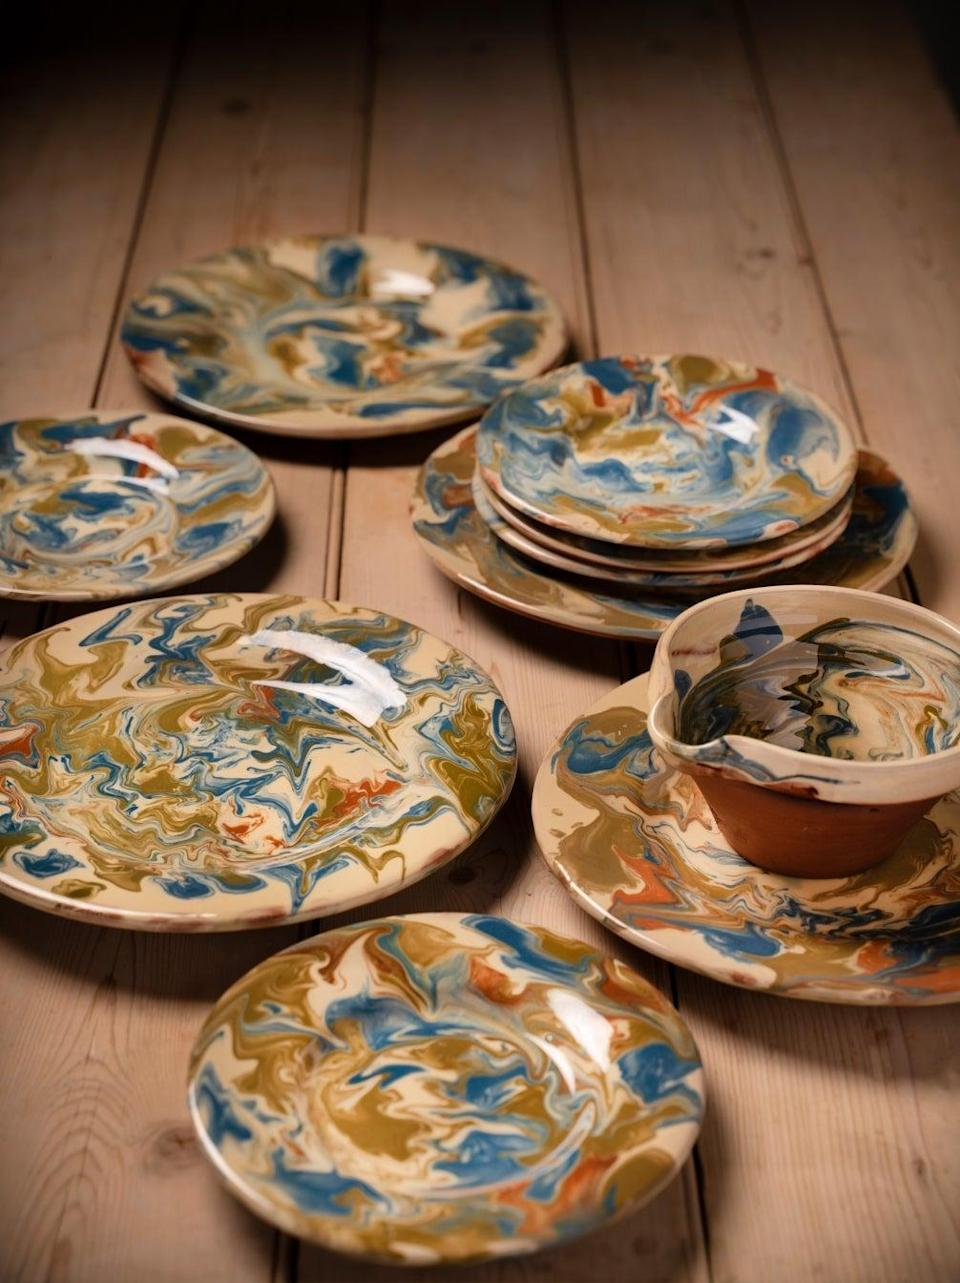 """<br><br><strong>REfound</strong> Handmade Marbled Pottery, $, available at <a href=""""https://www.re-foundobjects.com/product/view/handmade-marbled-pottery?cat=53"""" rel=""""nofollow noopener"""" target=""""_blank"""" data-ylk=""""slk:REfound"""" class=""""link rapid-noclick-resp"""">REfound</a>"""